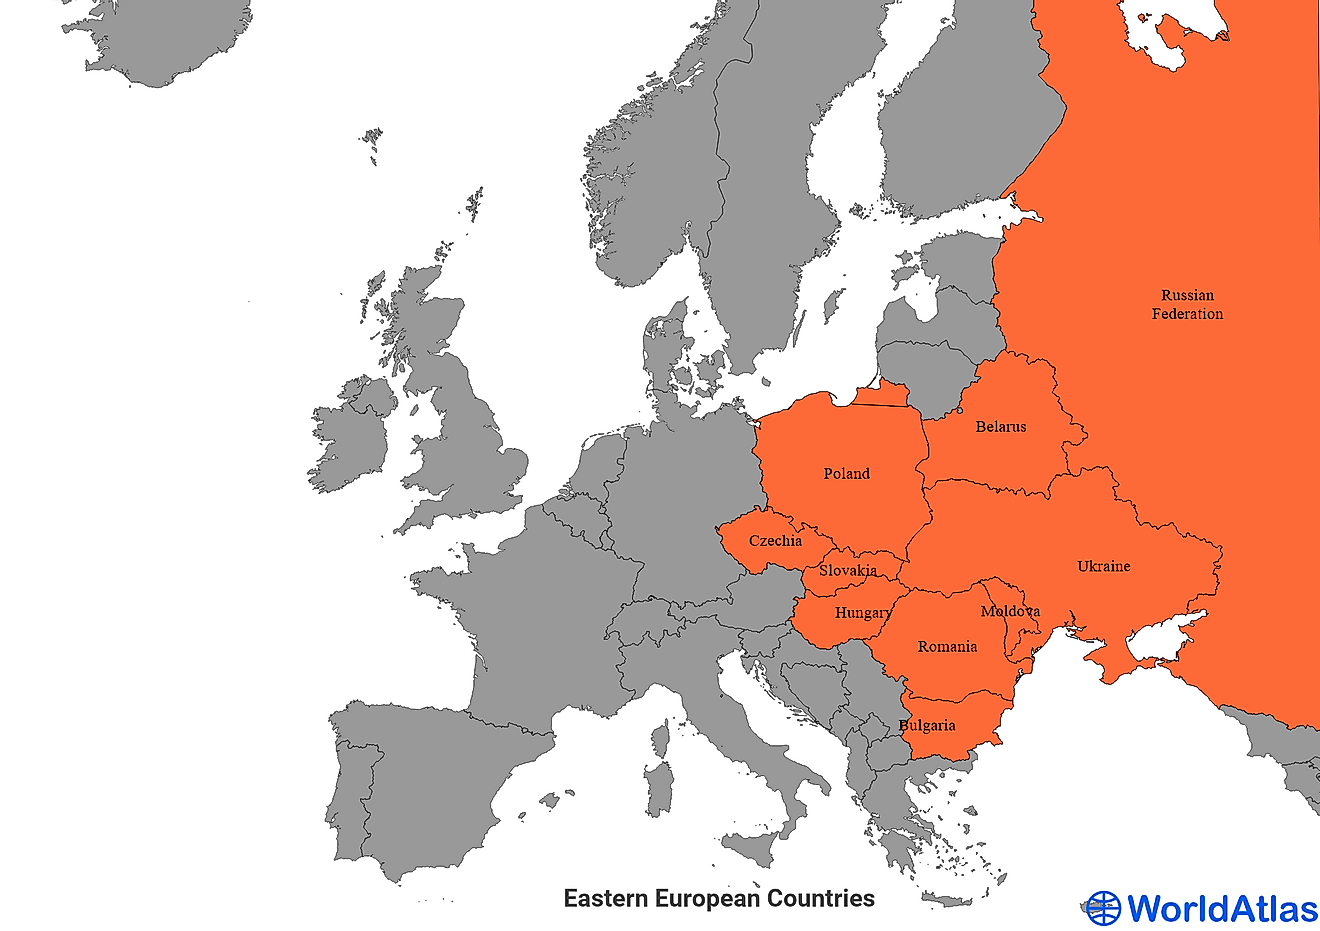 Map of Europe showing the Eastern European Countries.